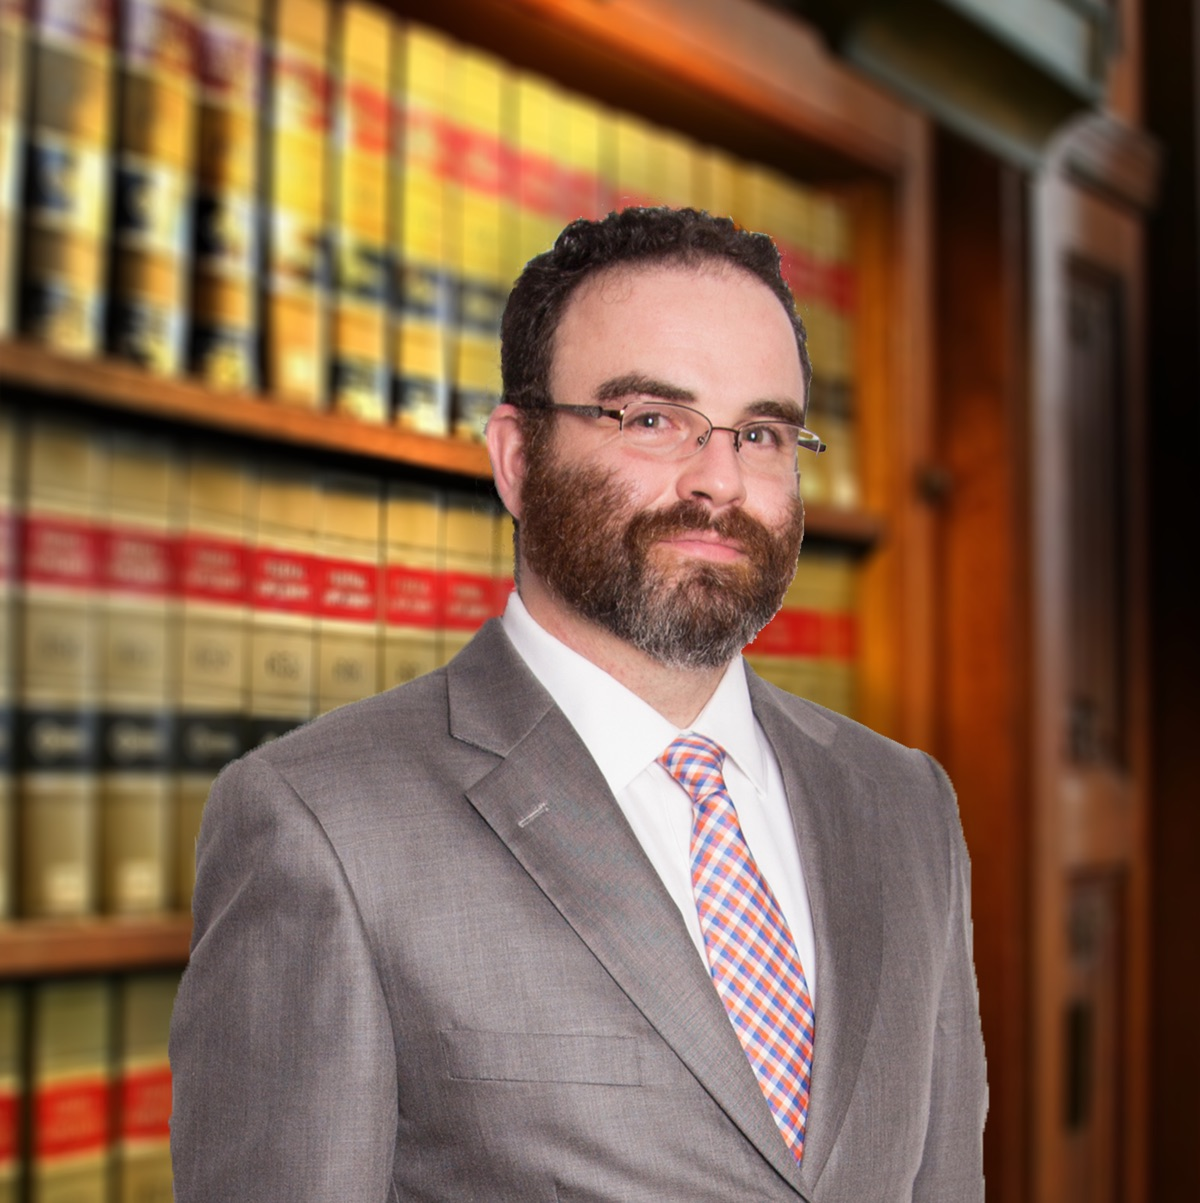 St. Cloud Attorney Daniel Shub